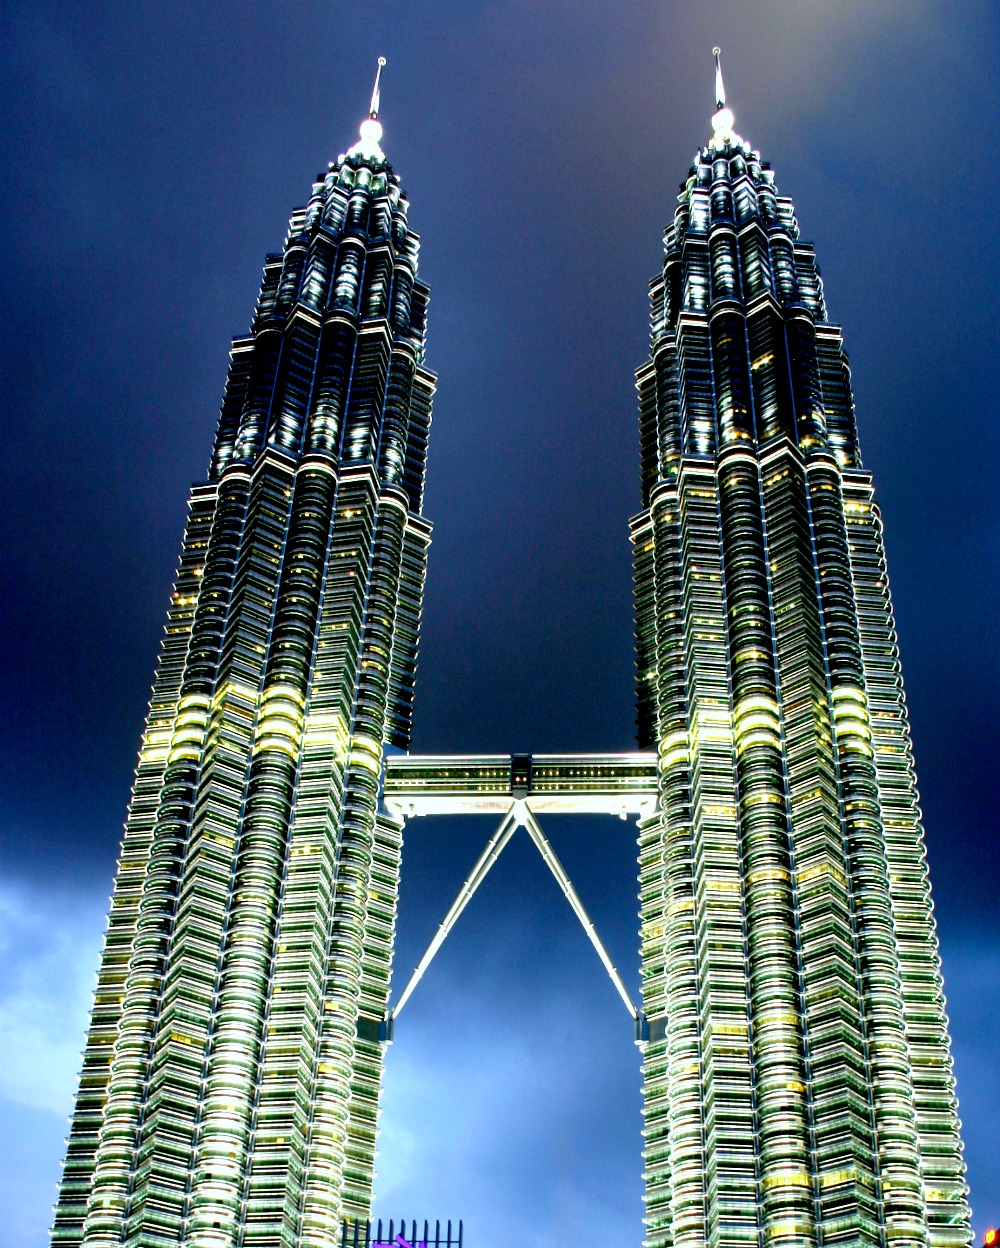 petronas twin towers The twin 88-story steel and glass buildings known as the petronas twin towers,  completed in 1996, are icons of malaysia designed to symbolize courage and.